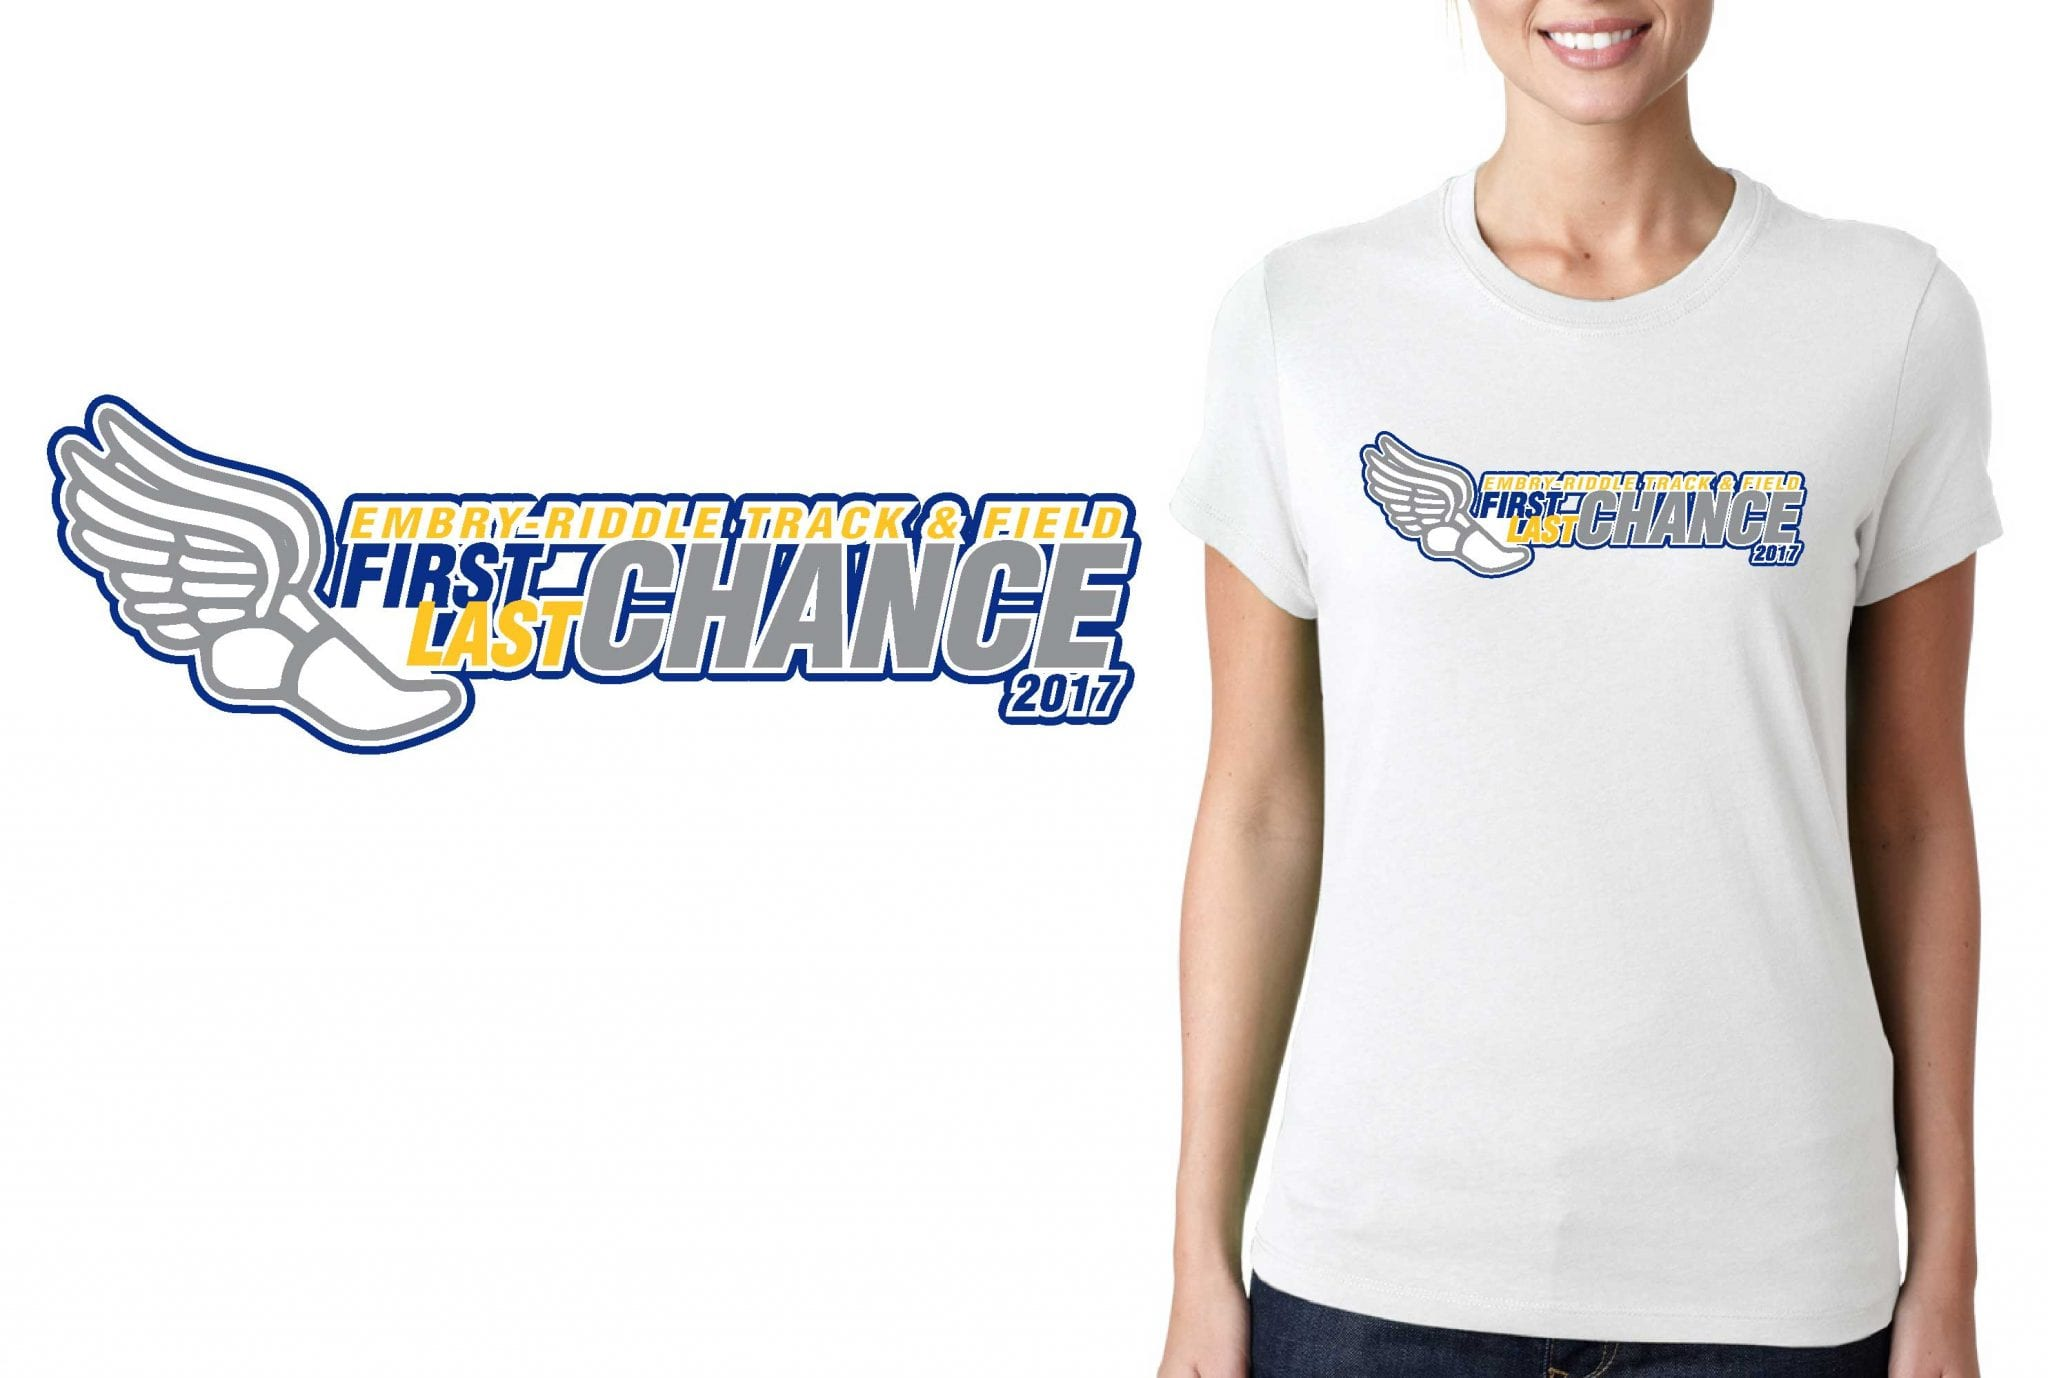 TRACK AND FIELD TSHIRT LOGO DESIGN Embry-Riddle-Last-chance BY UrArtStudio